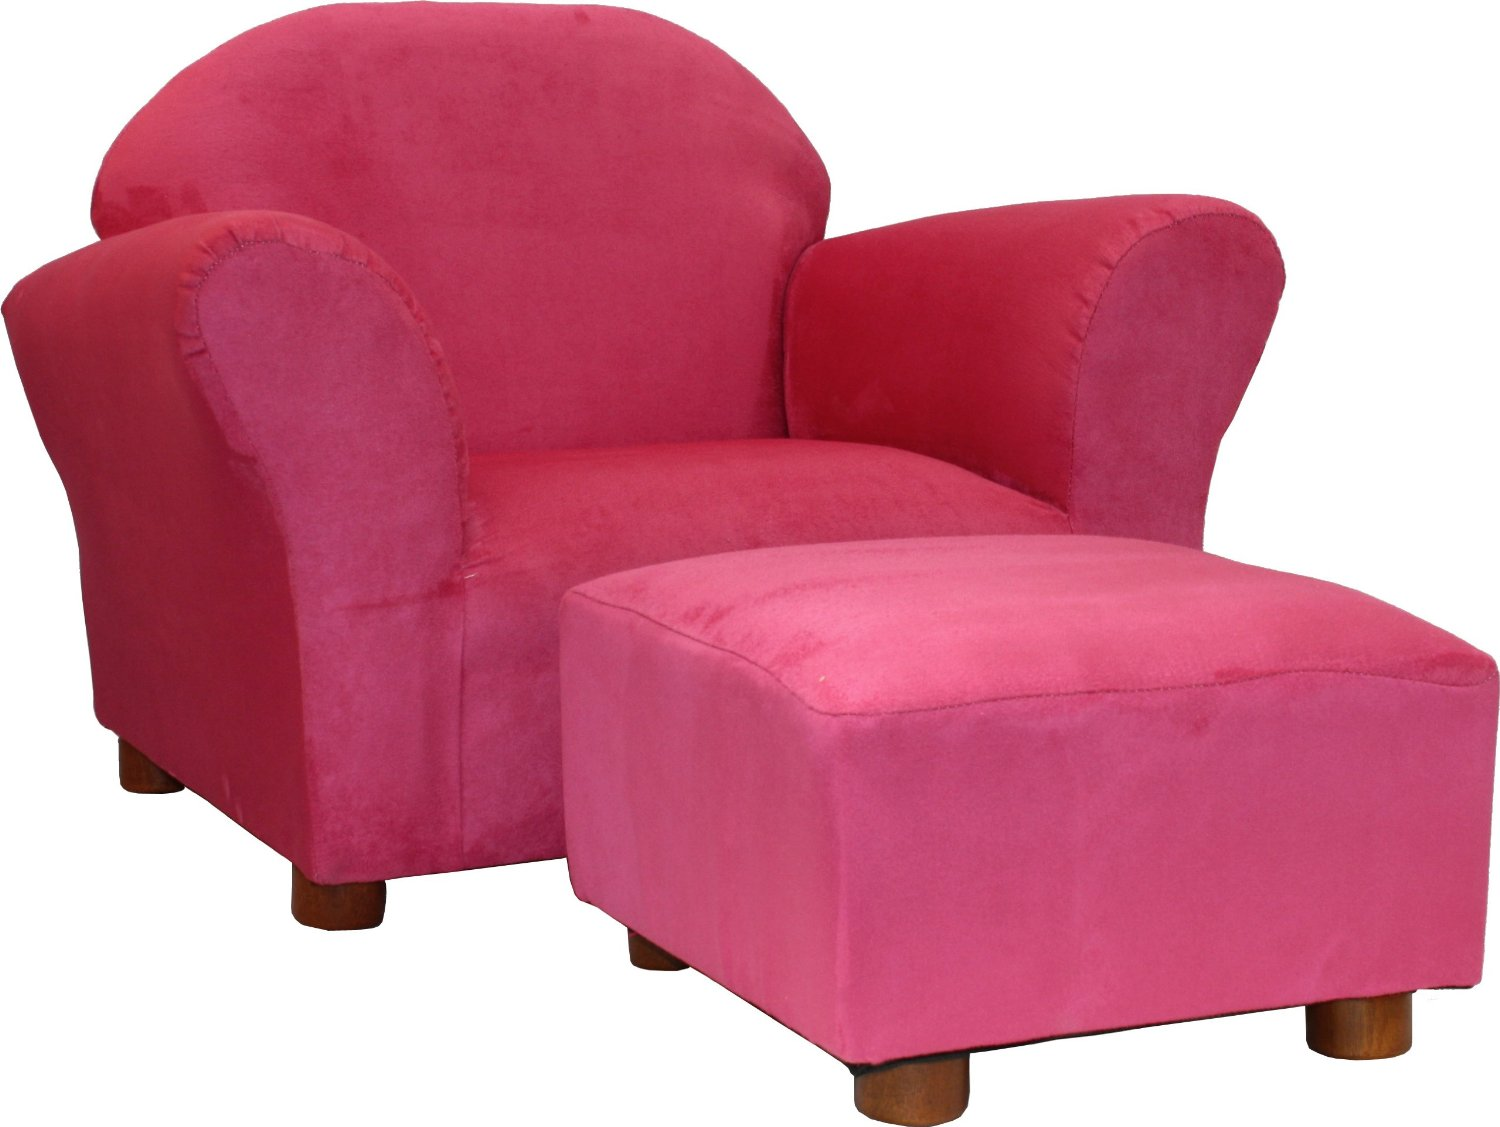 Charmant Turning Standard Into Super: Solid Color Kidsu0027 Chair And Ottoman Sets For  Boys U0026 Girls